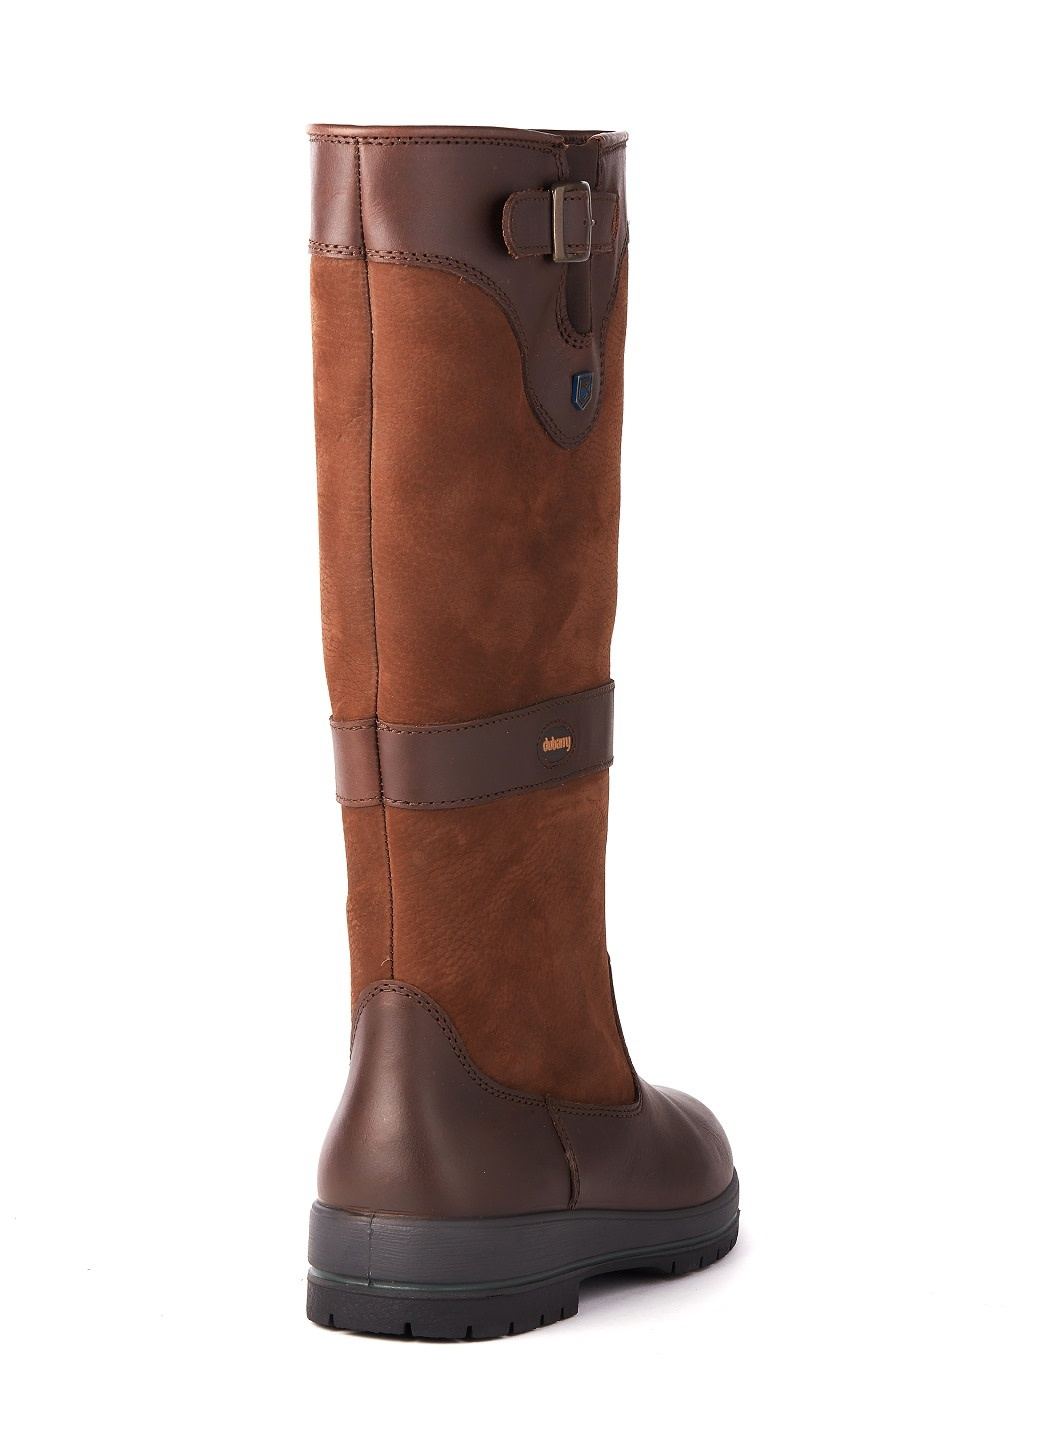 Dubarry Tipperary - Walnut-5